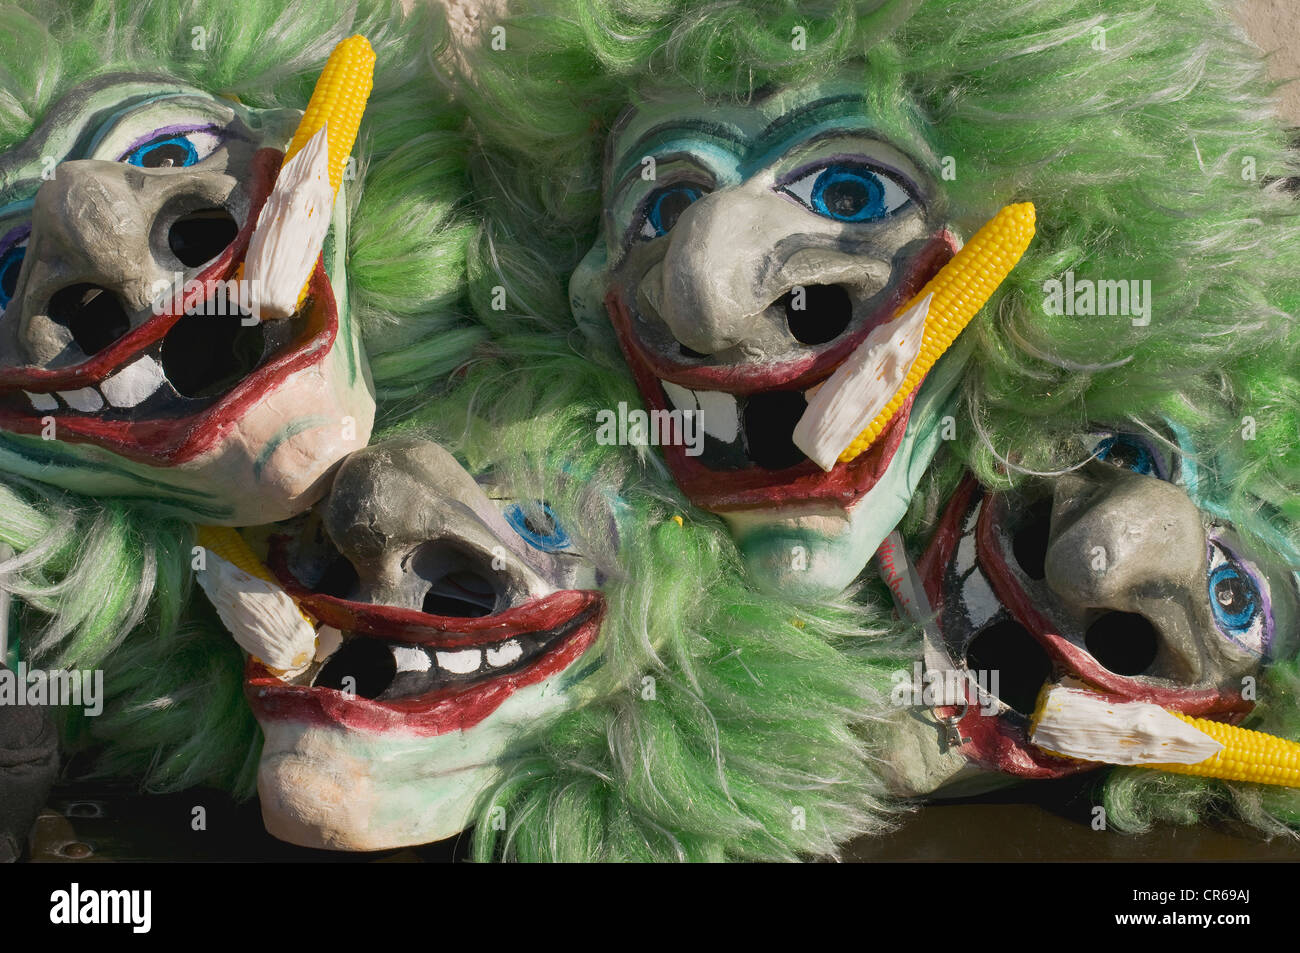 Stacked masks of Gugge traditional musicians, faces with green hair and corn cobs, Salzburg, Austria, Europe - Stock Image